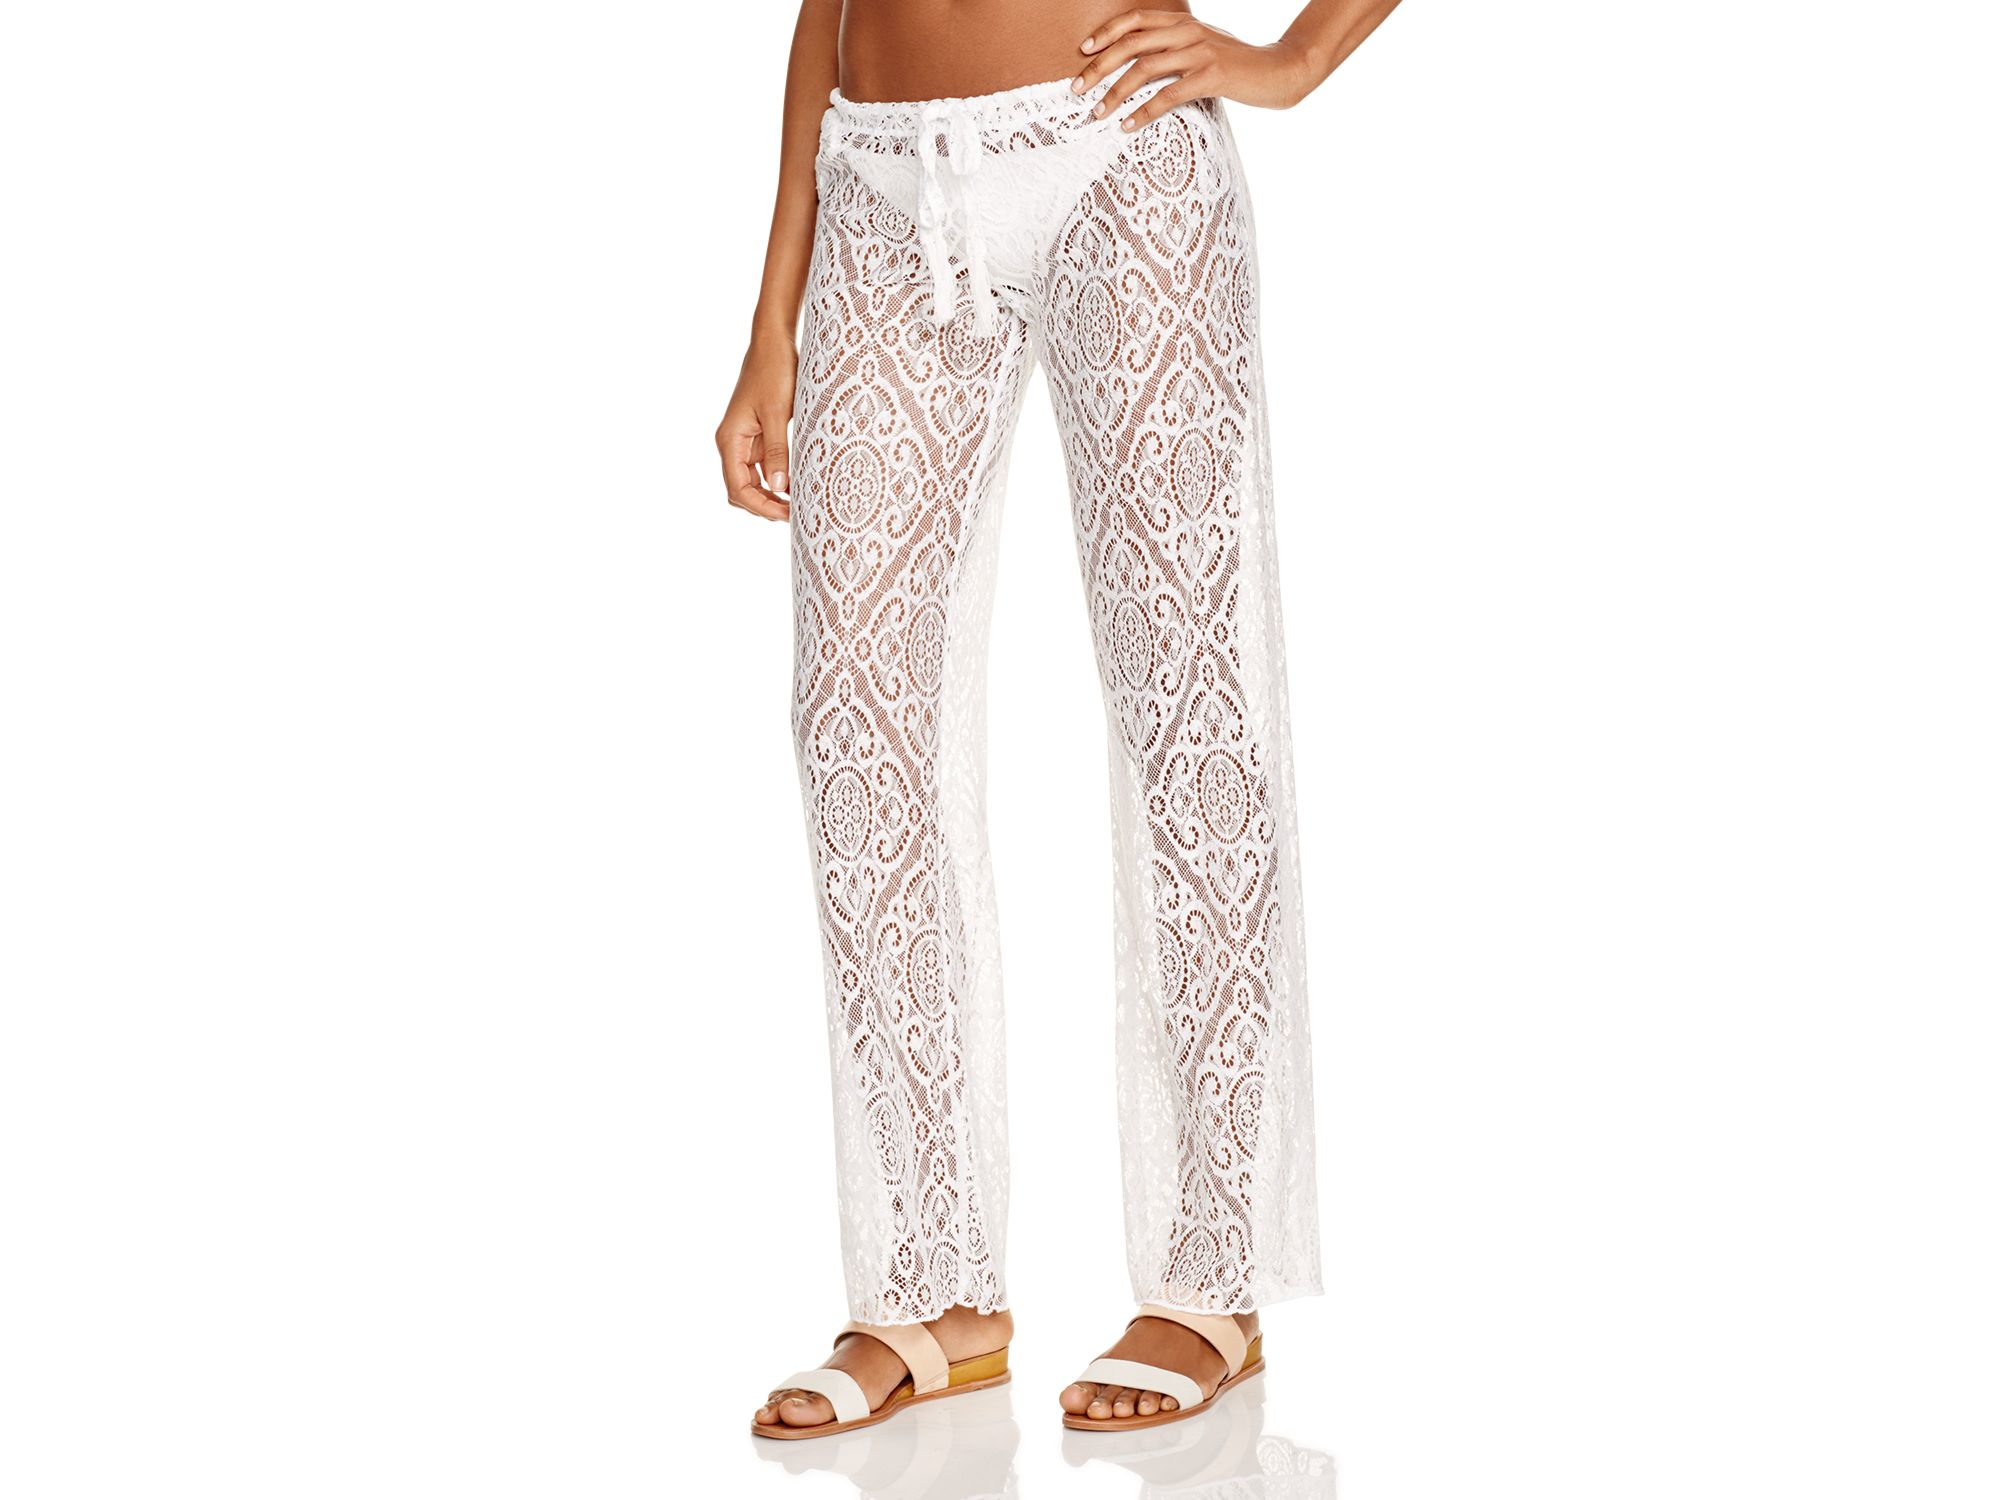 ddd2dd98f9 Becca Amore Lace Swim Cover Up Pants in White - Lyst